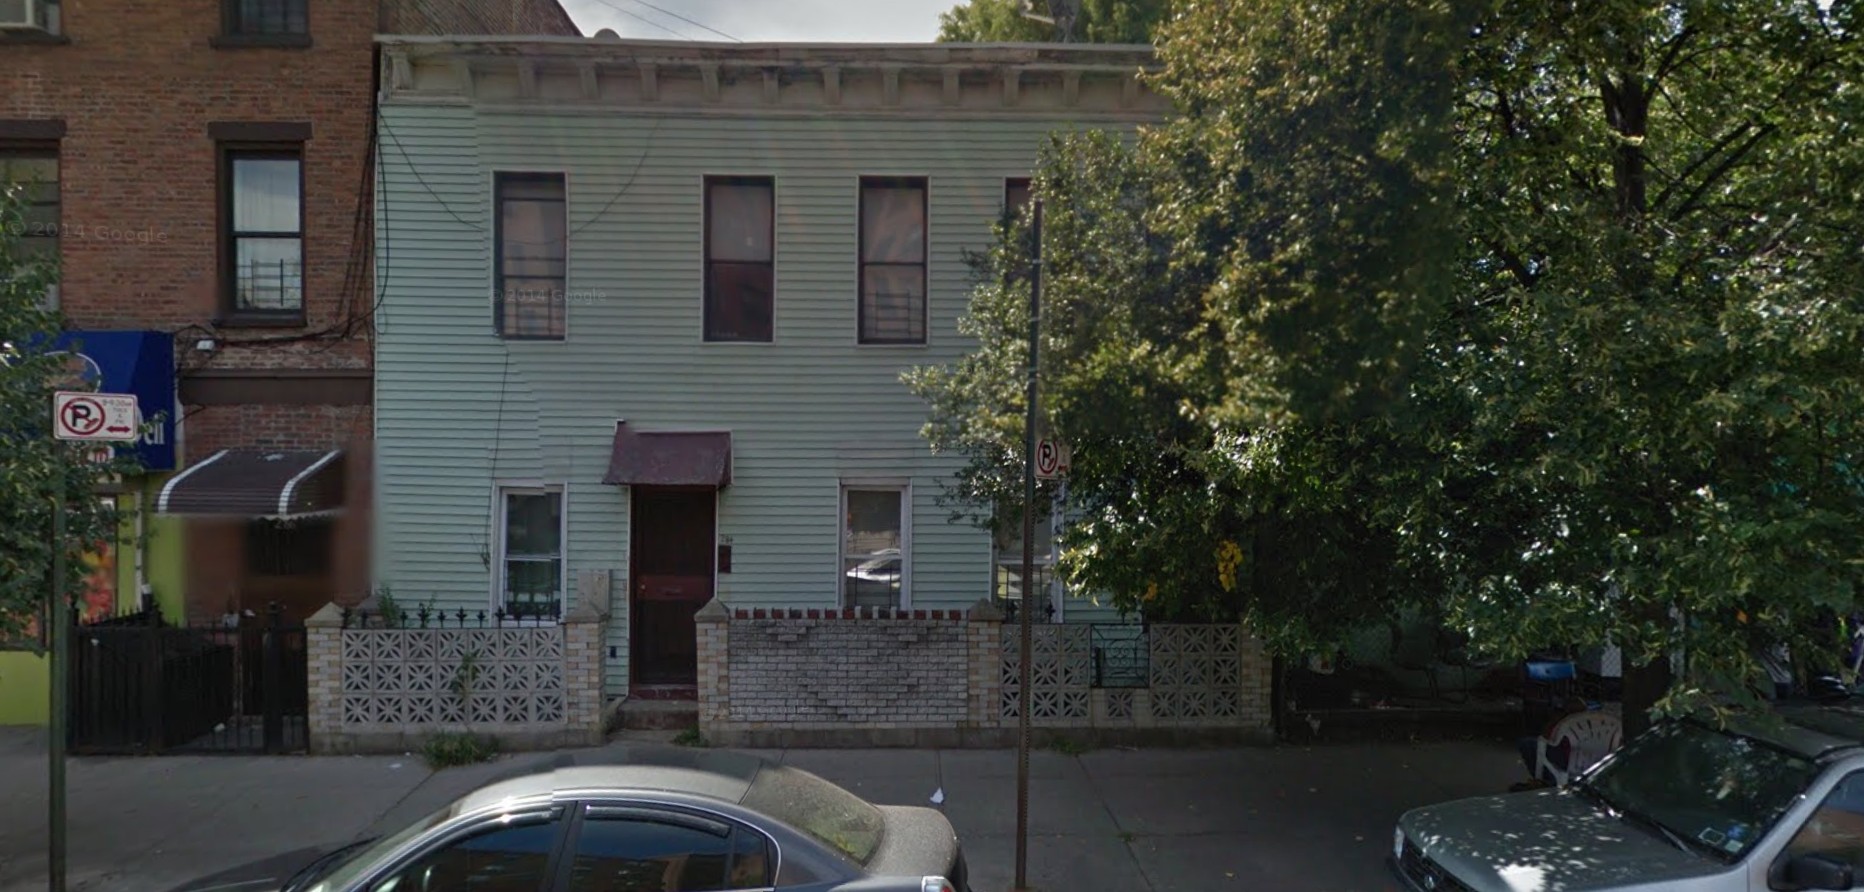 282 Patchen Avenue, image via Google Maps